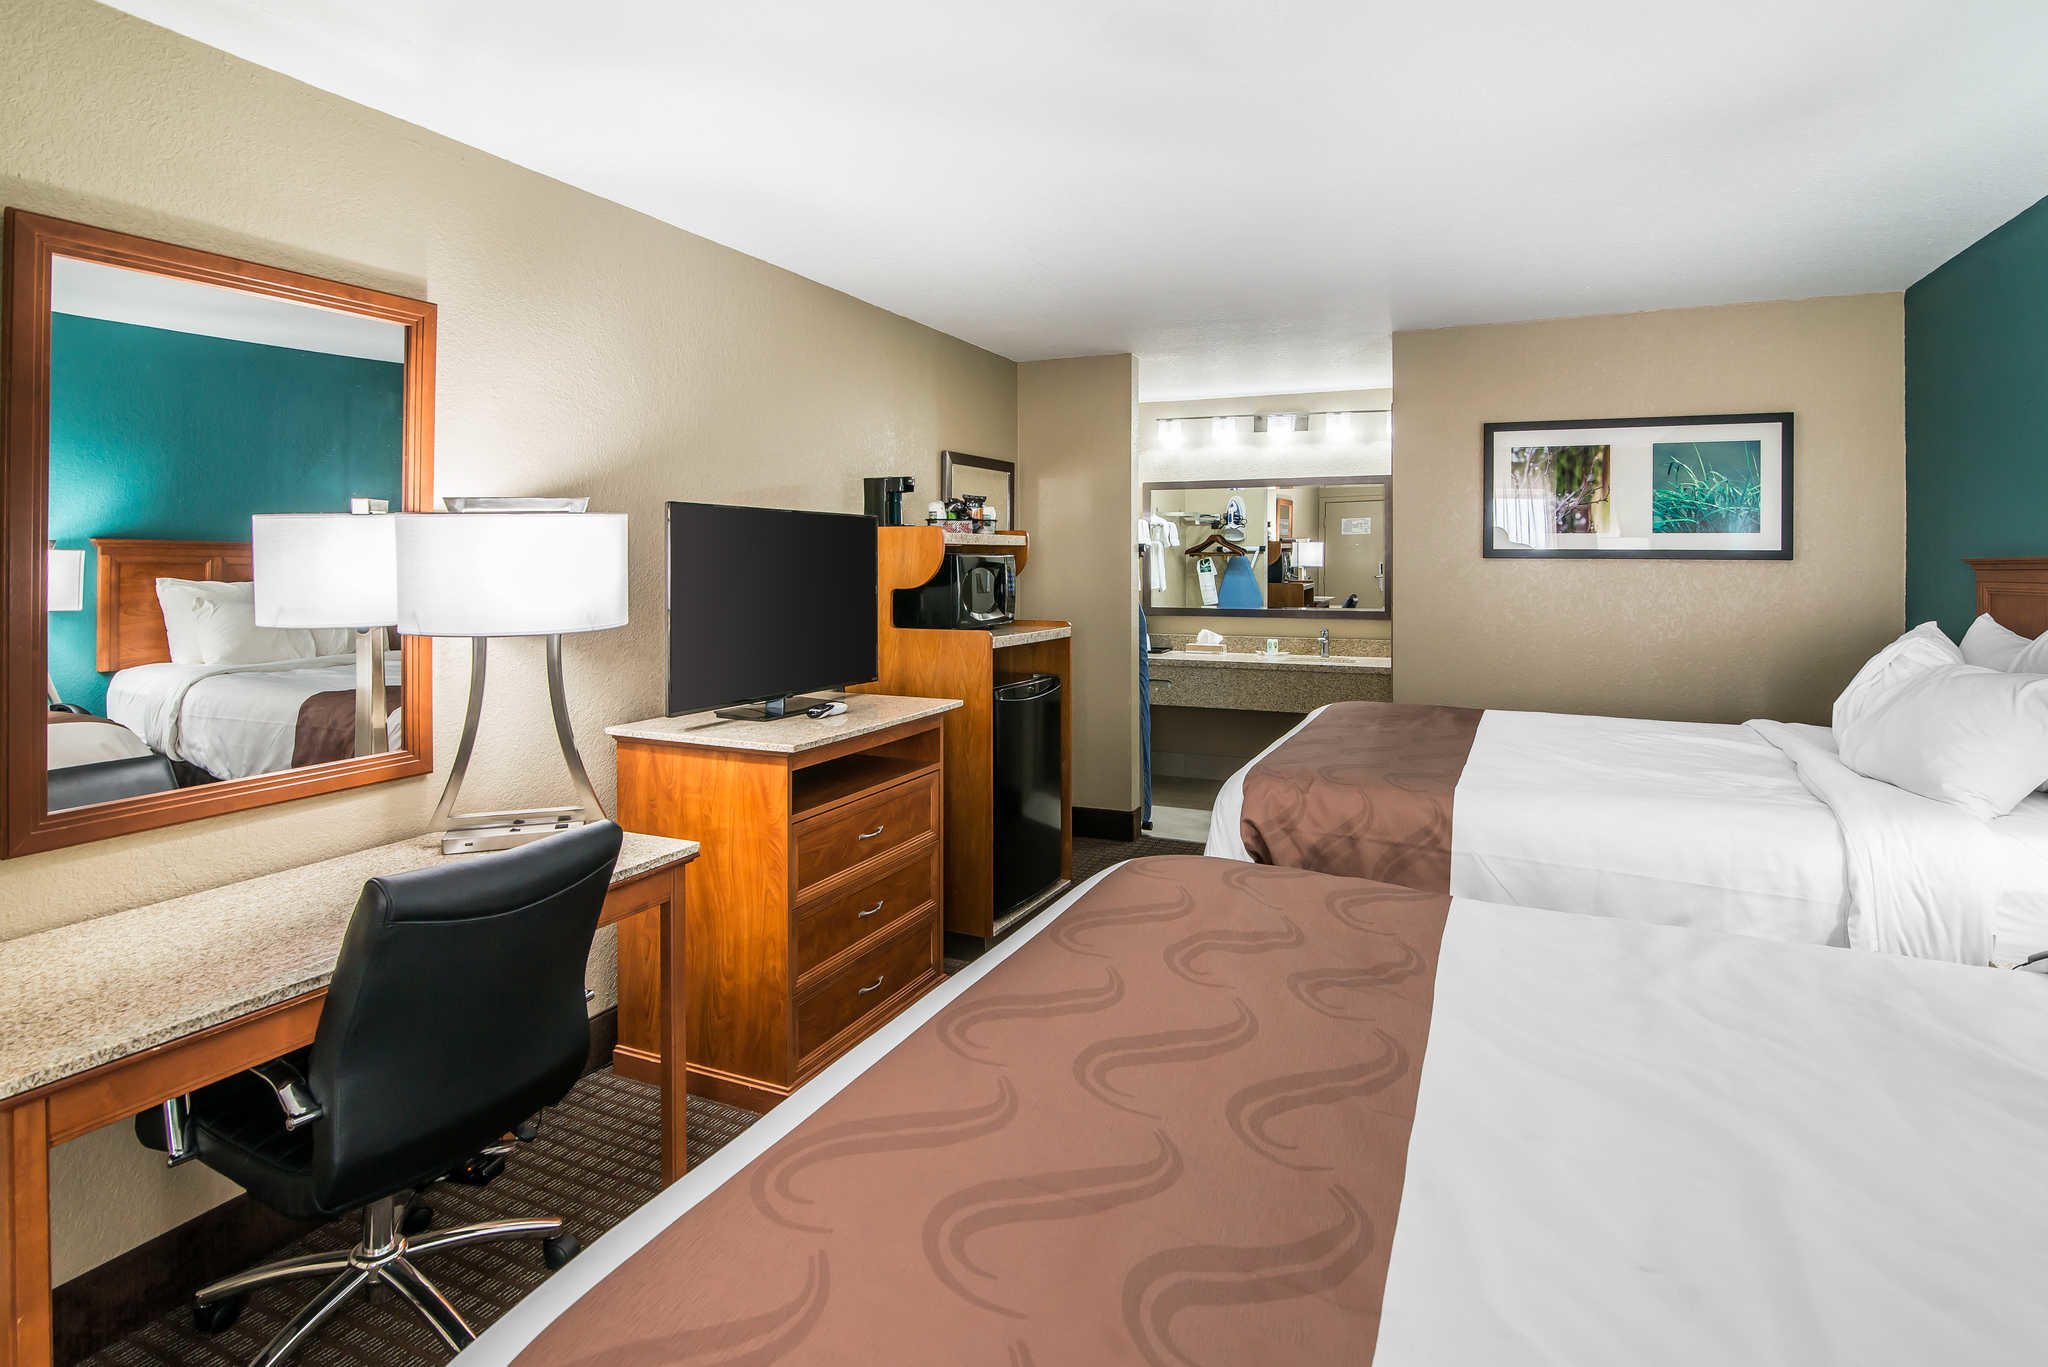 Quality Inn & Suites Near White Sands National Monument image 14